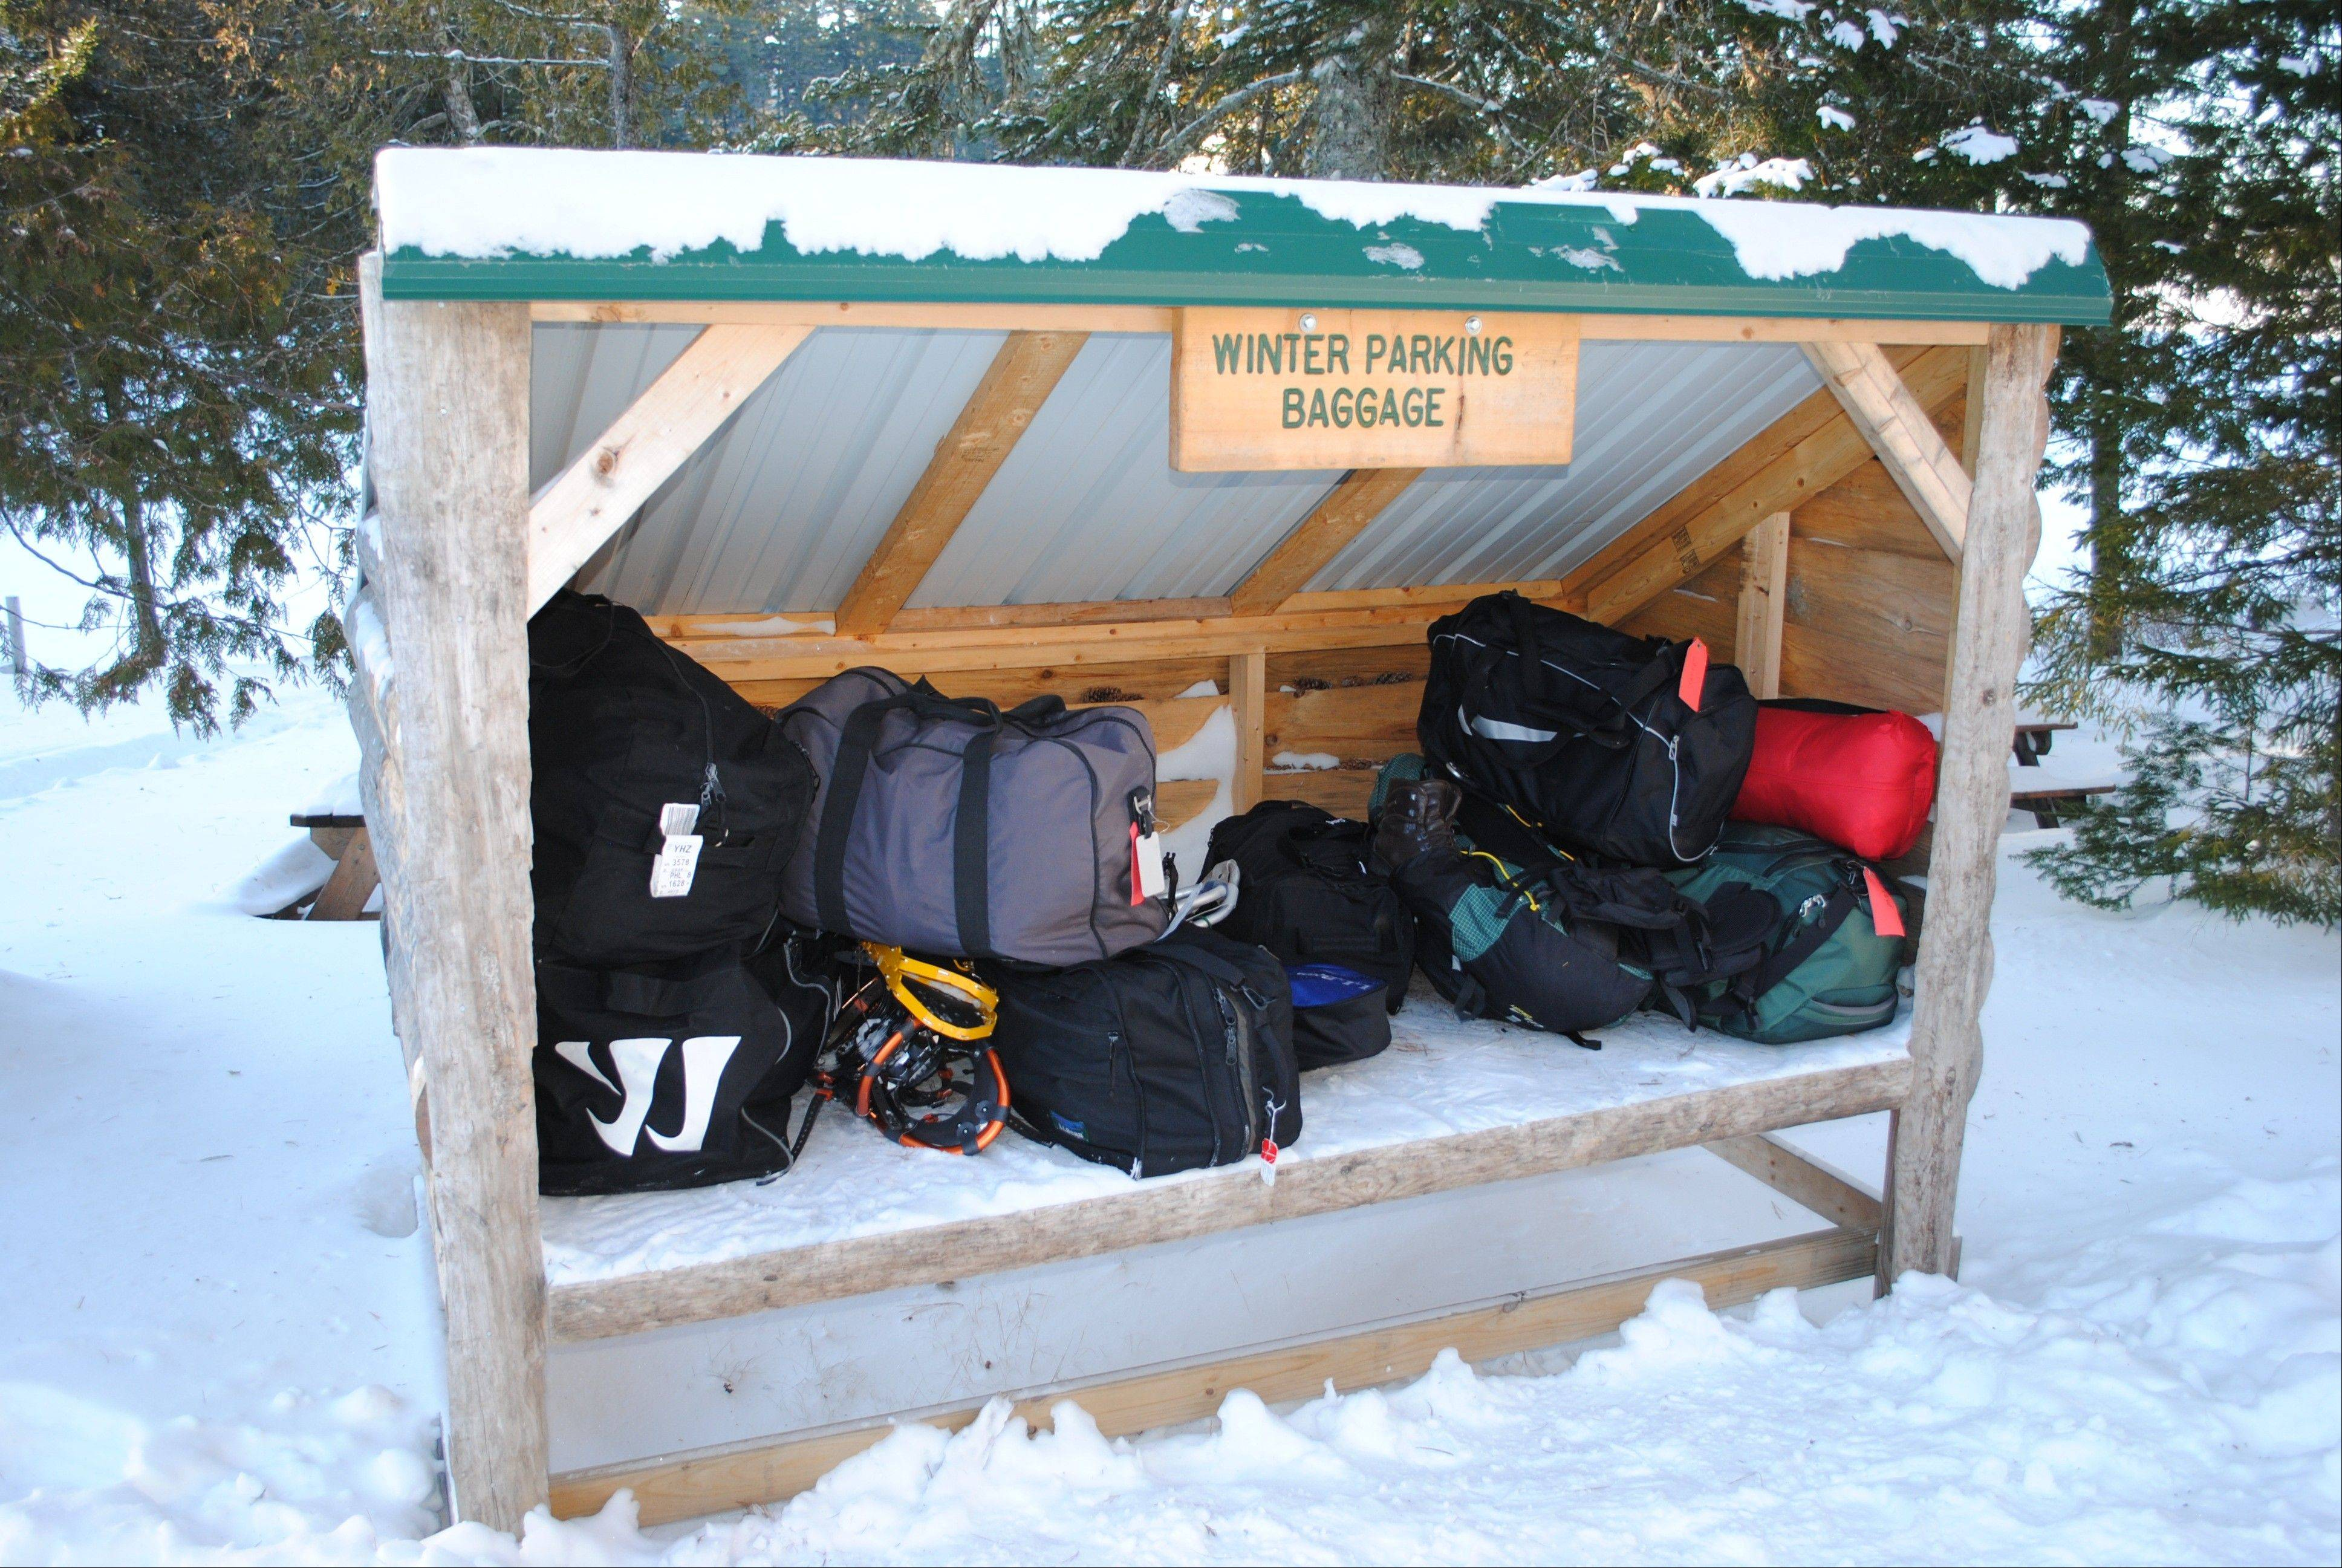 A small shed holds luggage left for pickup by guests at the Appalachian Mountain Club's Gorman Chairback Lodge, a backcountry wilderness lodge near Greenville, Maine.